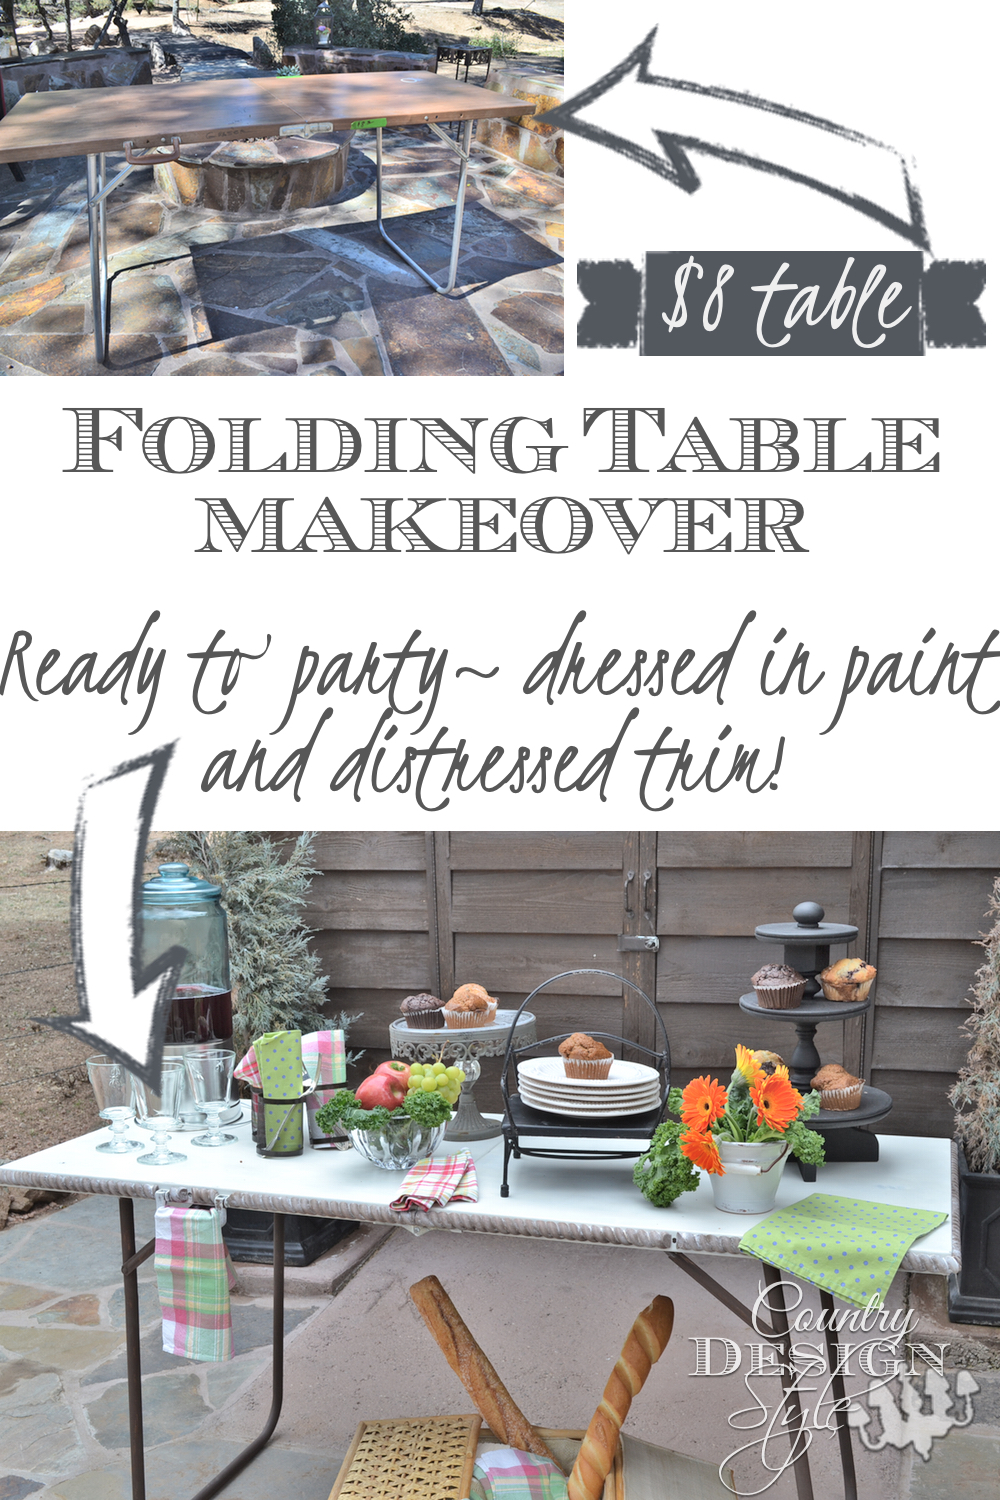 Folding table makeover, DIY painting with chalky paint added distress wood trim. Country Design Style